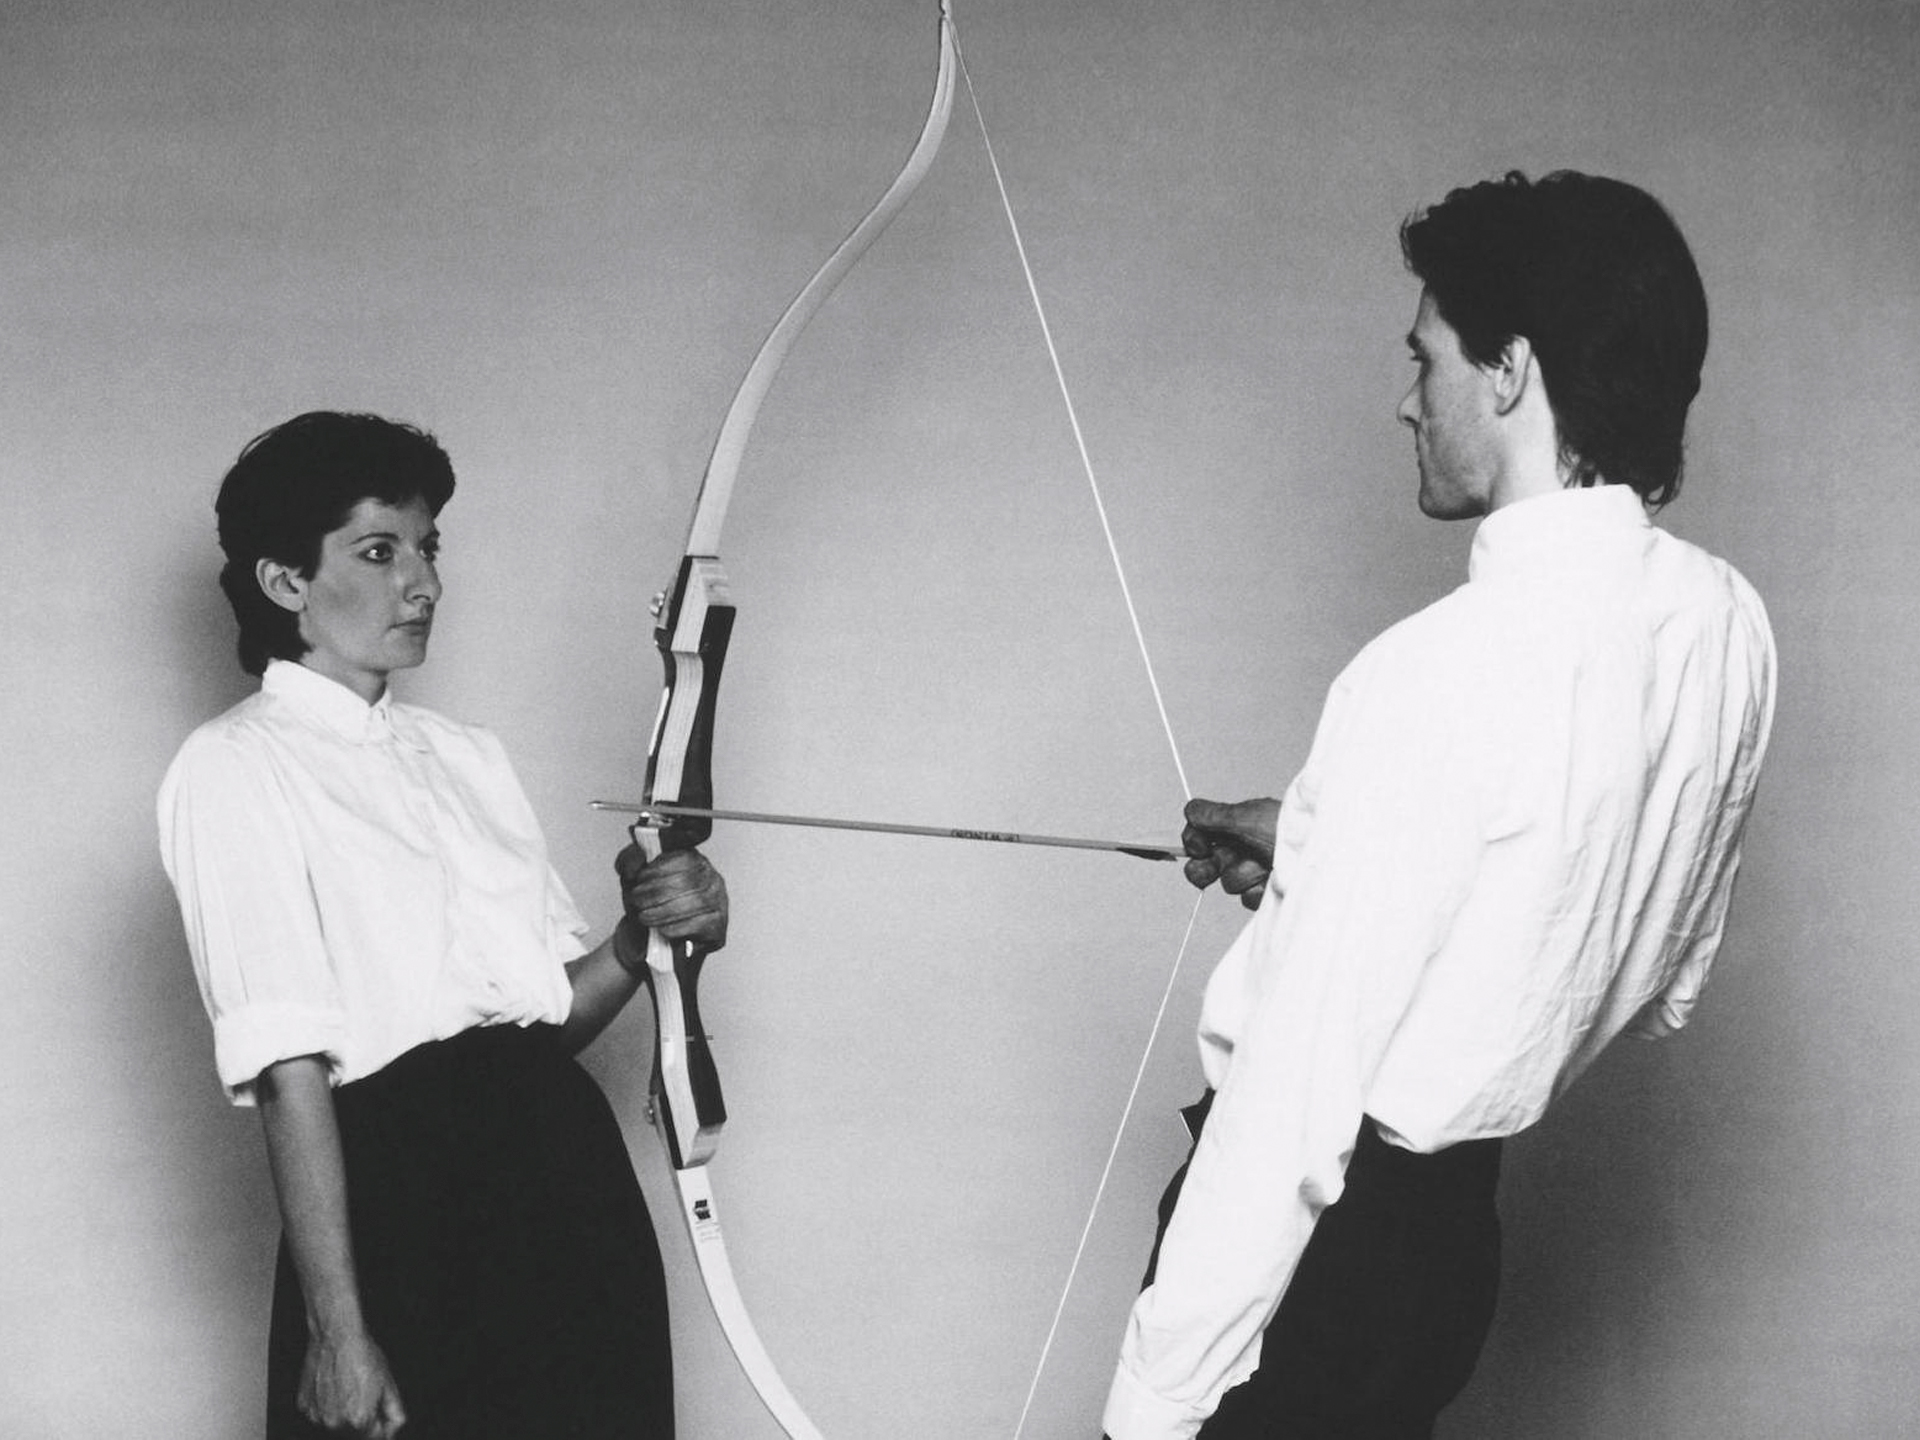 A person holding a bow aimed at a second person